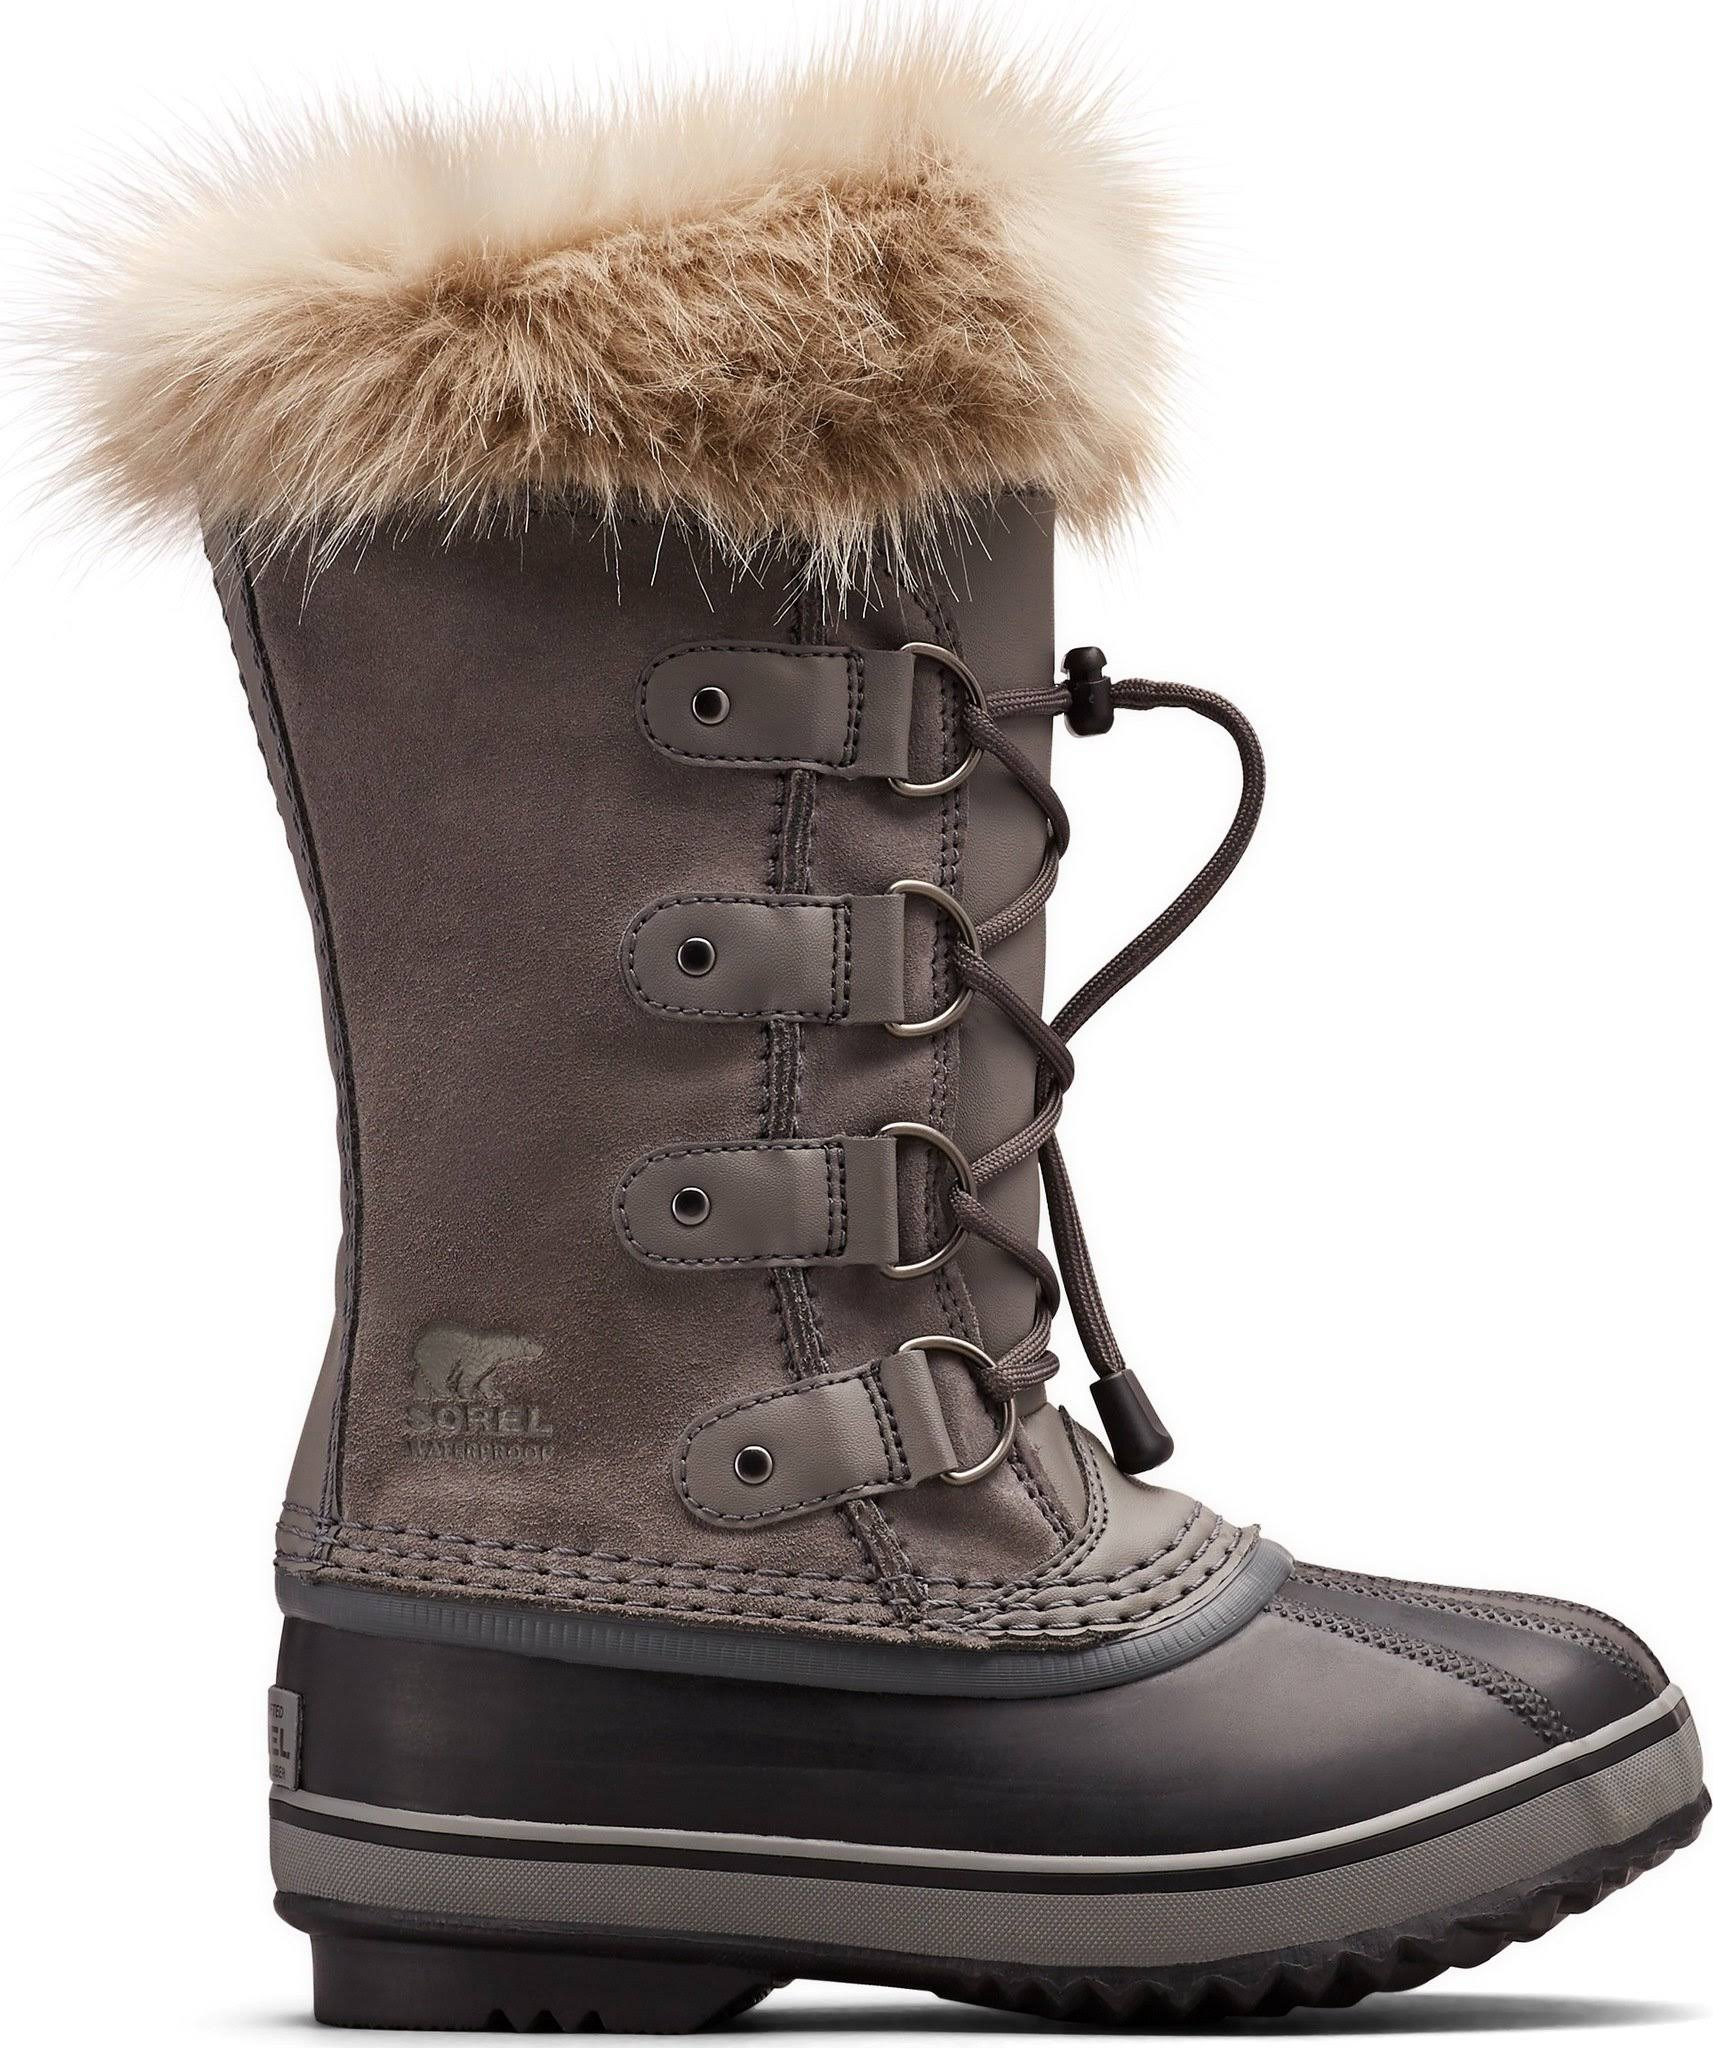 Sorel Youth Joan of Arctic Quarry 5